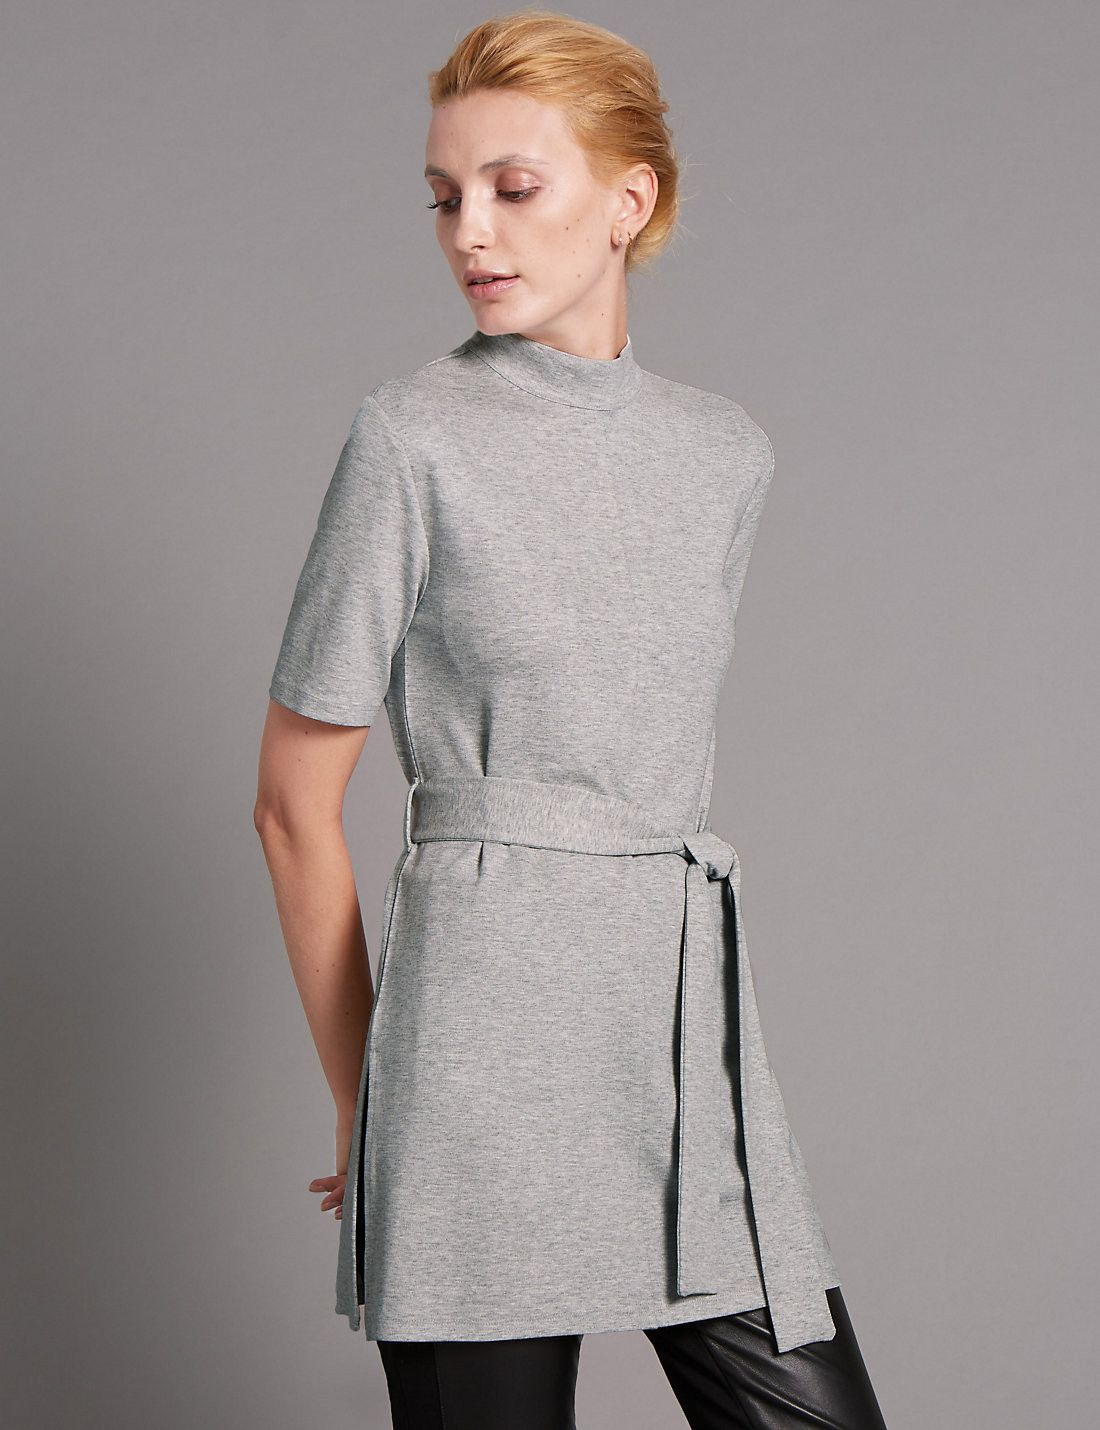 Tailored Fit Compact Tunic Dress